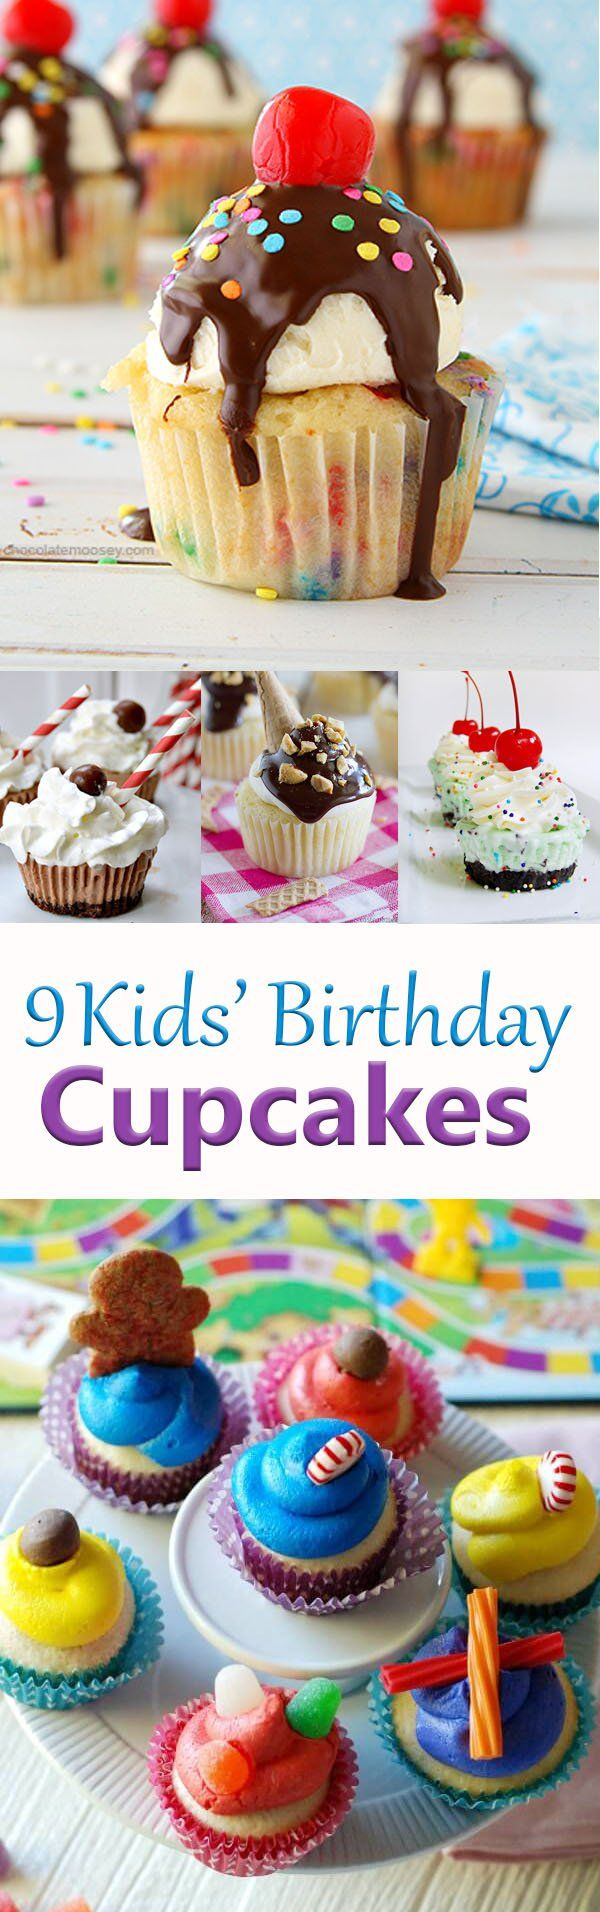 9 Birthday Cupcakes for Kids Sundae cupcakes, cactus cupcakes, Candy Land cupcakes, spider cupcakes, and more!